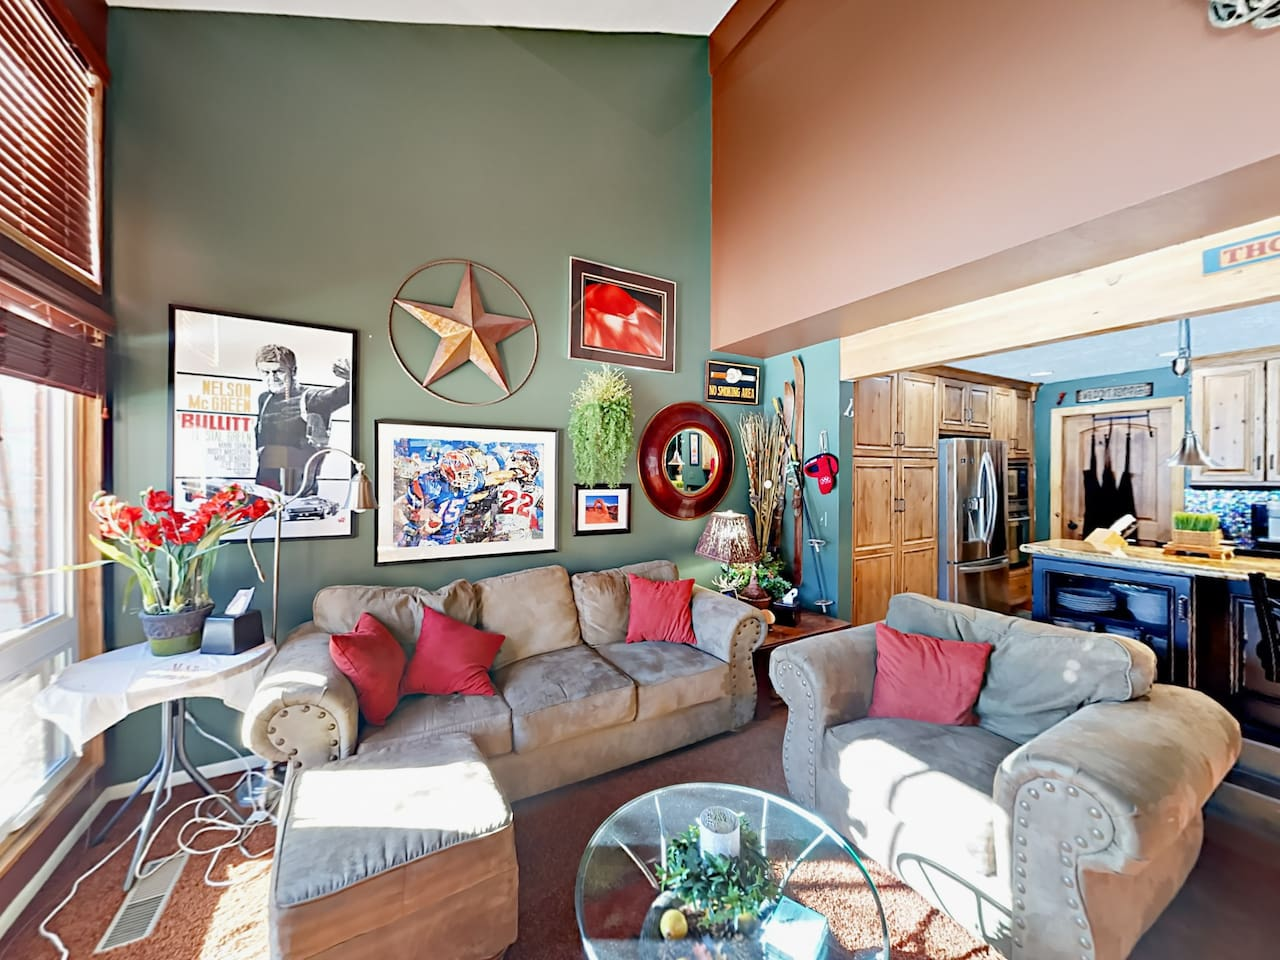 Welcome to Park City! A 2nd living area beside the kitchen offers comfy seating between a couch and armchair.